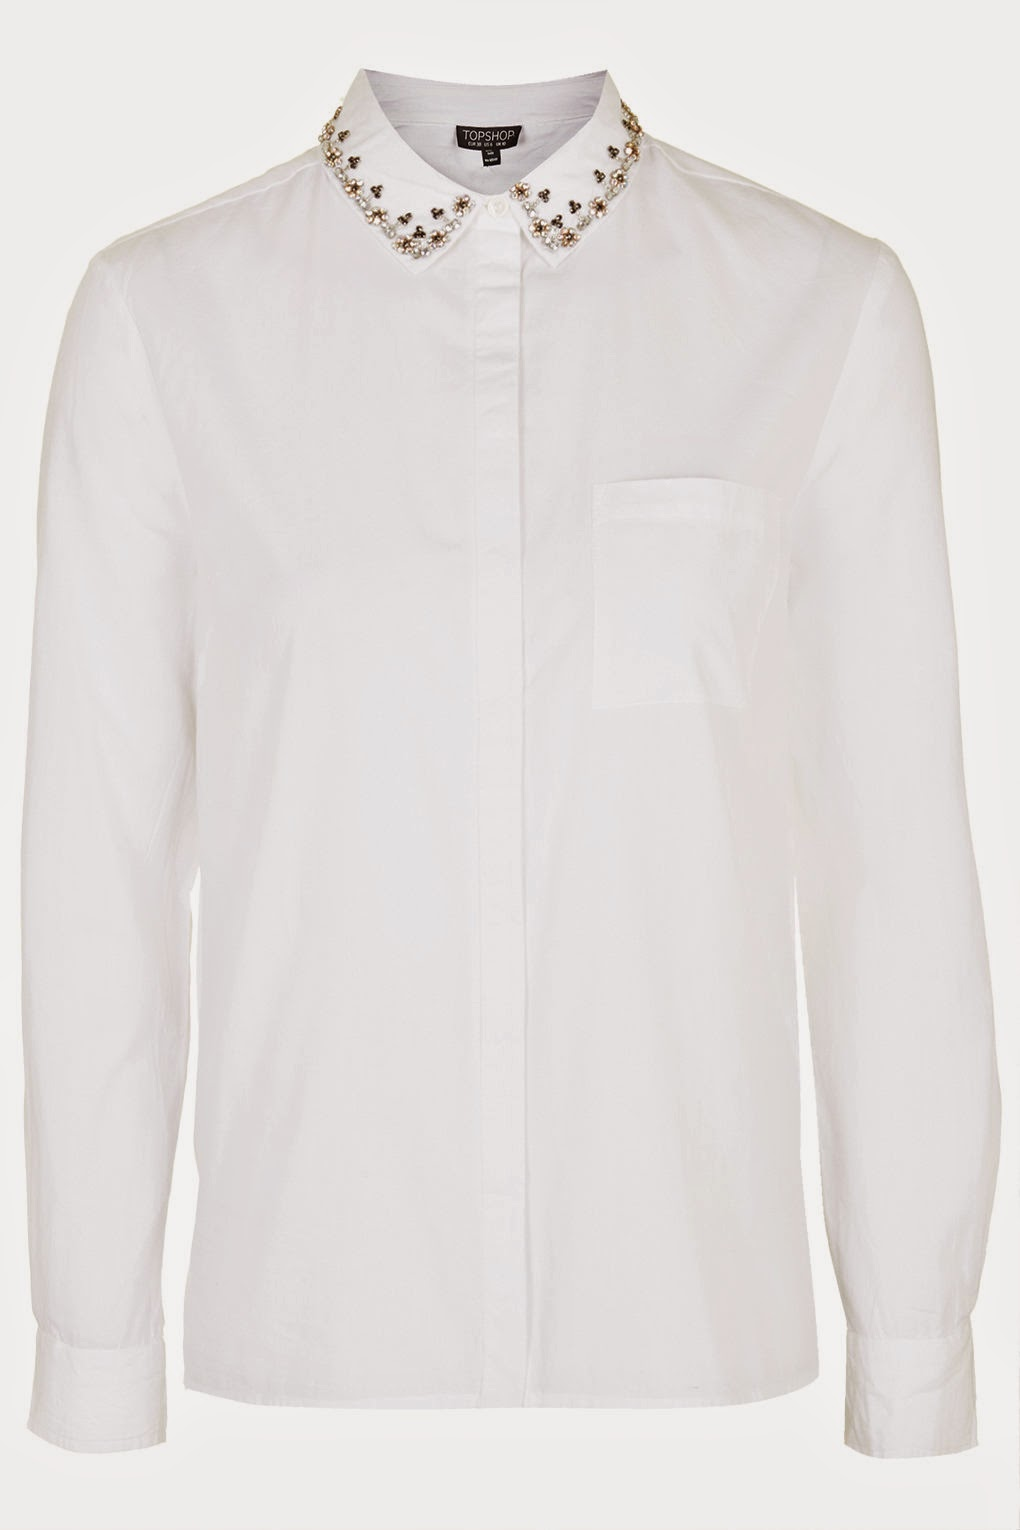 white embroidered collar shirt,